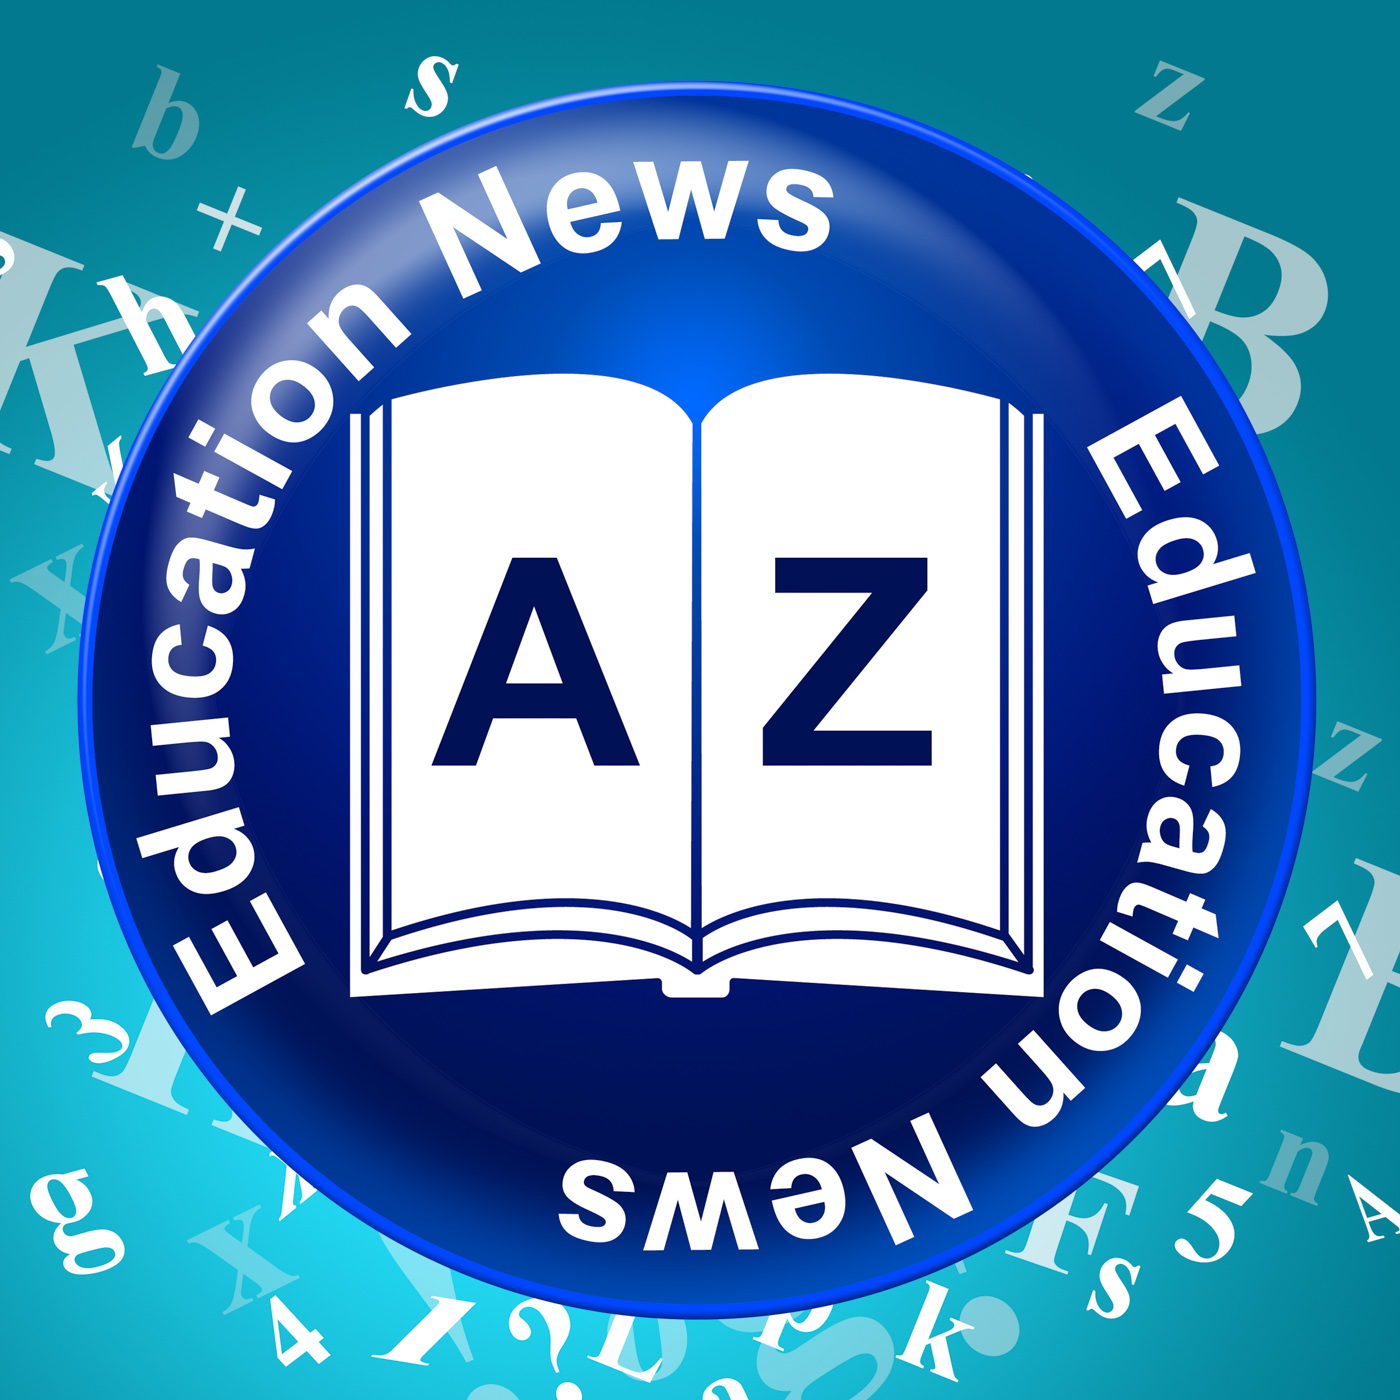 Education News Represents Tutoring Info And Training, Article, News, Training, Studying, HQ Photo